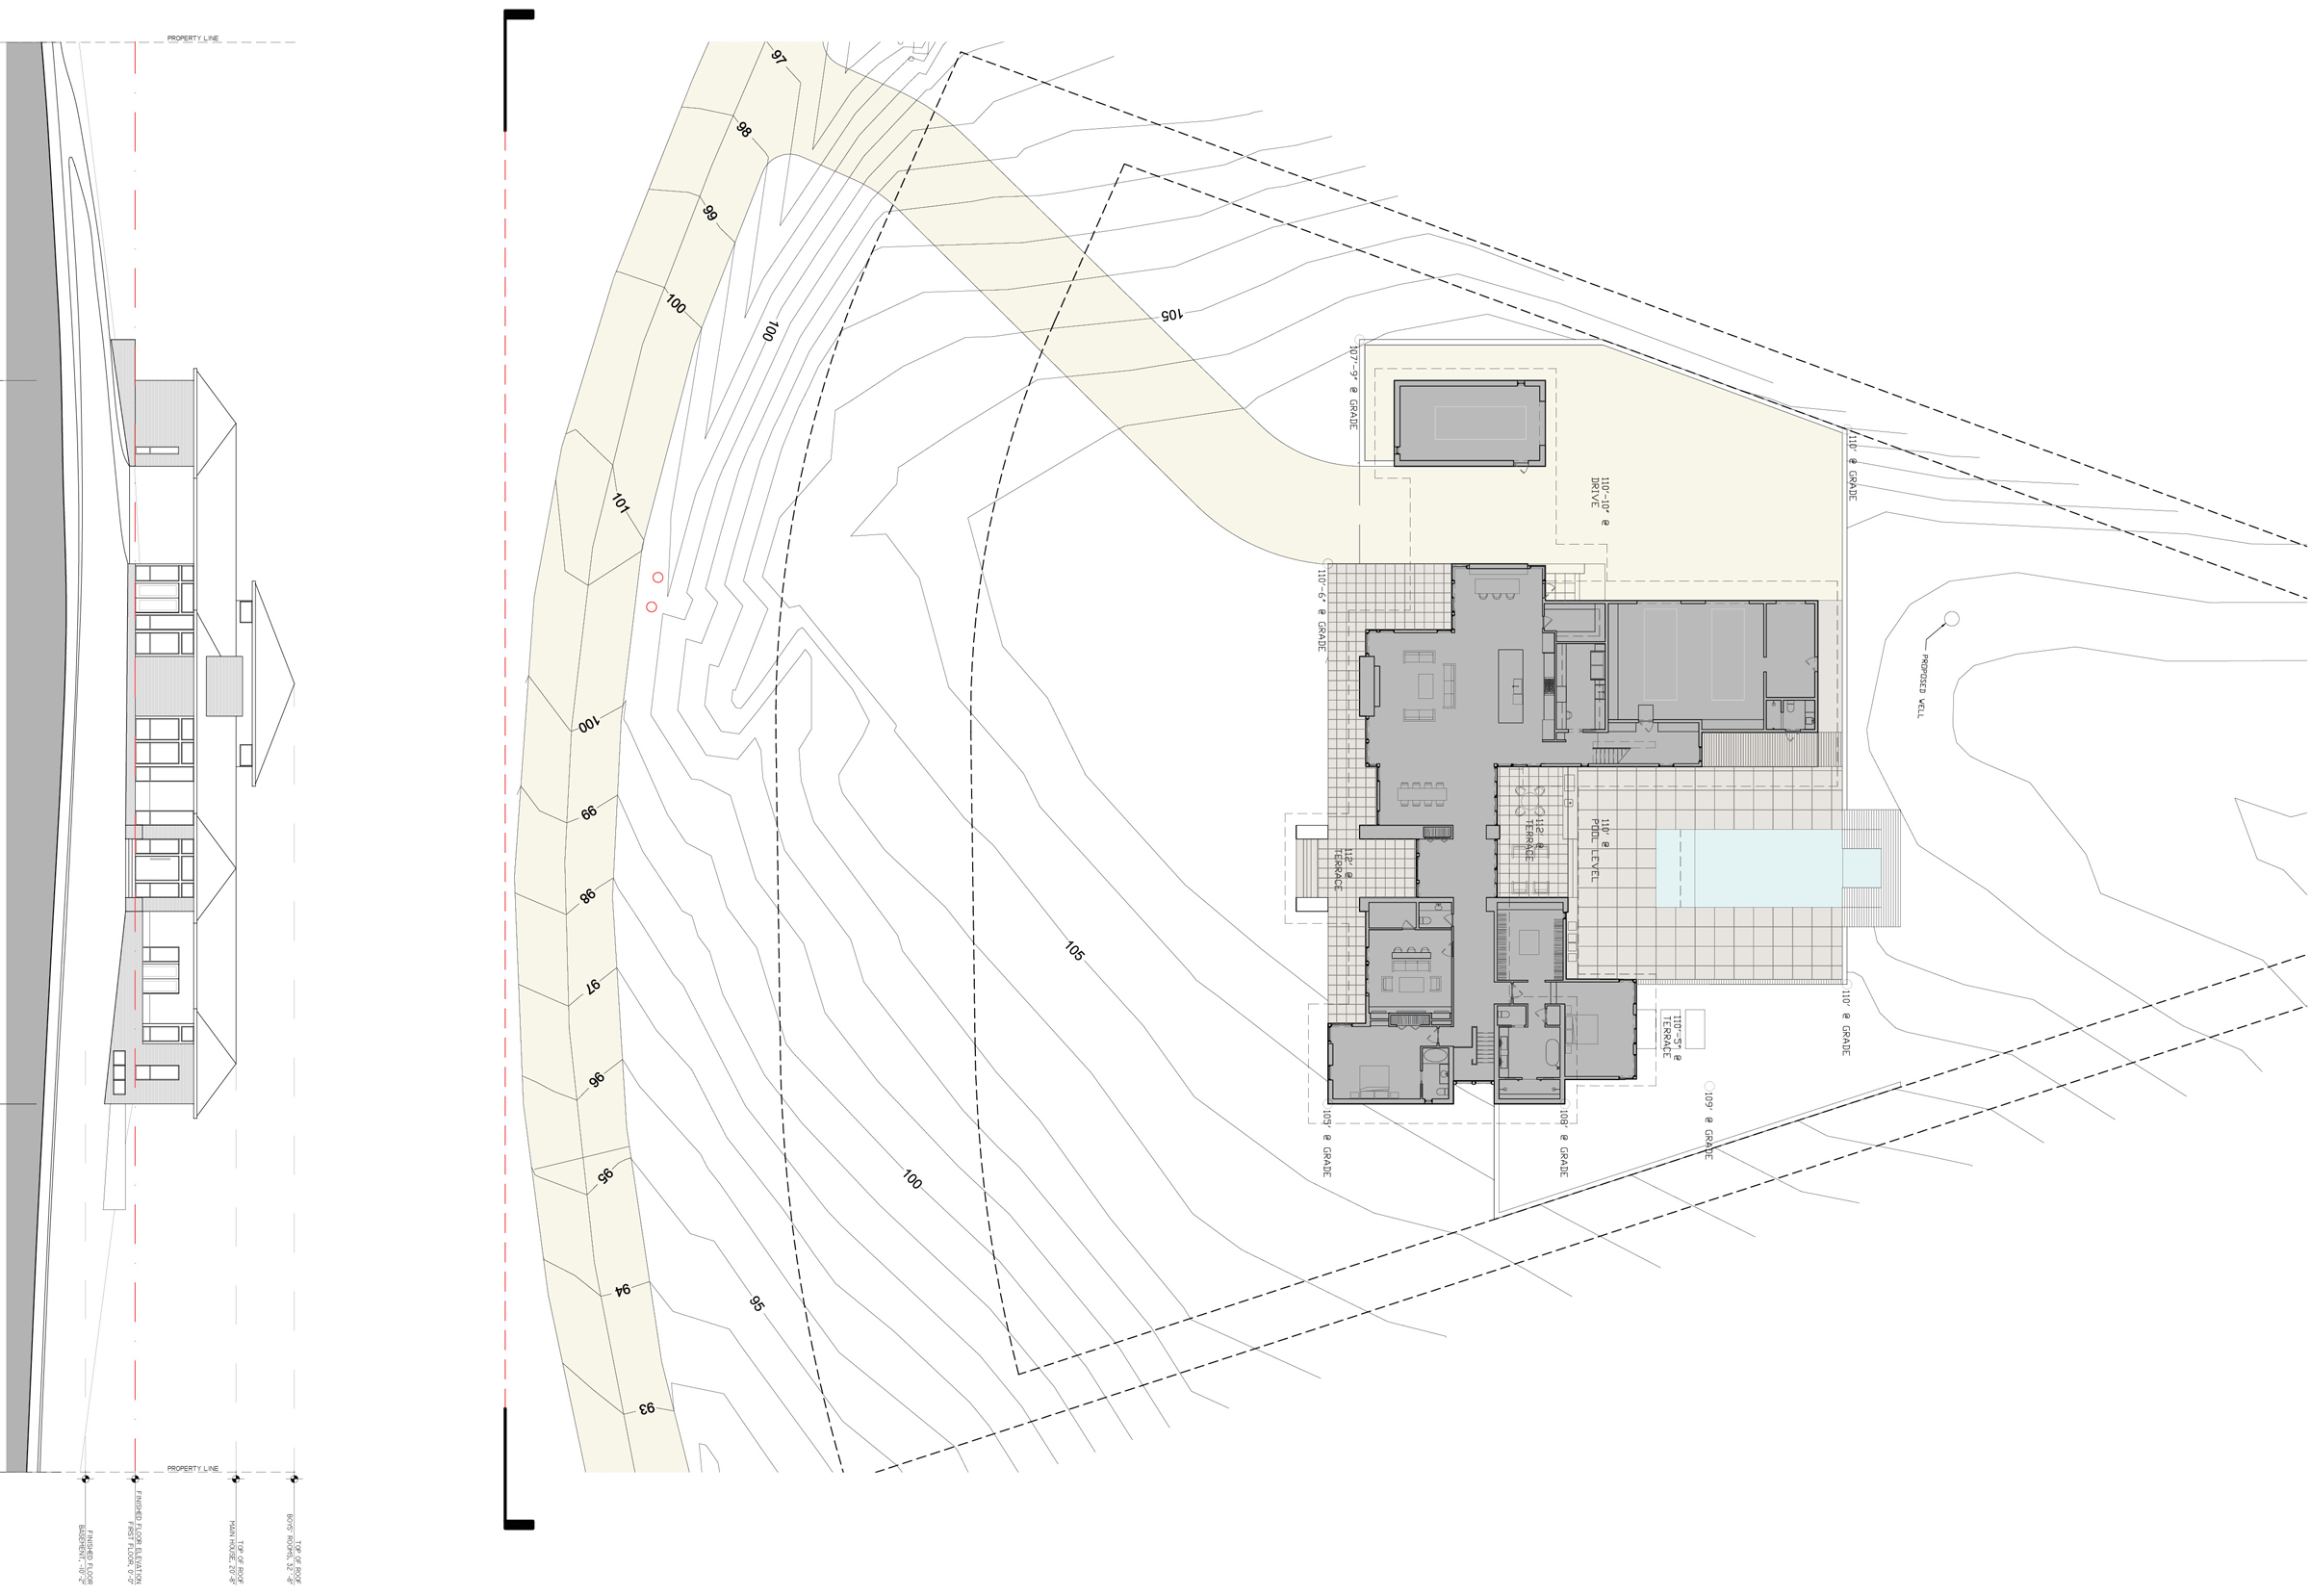 Architectural drawings sections site plan structure